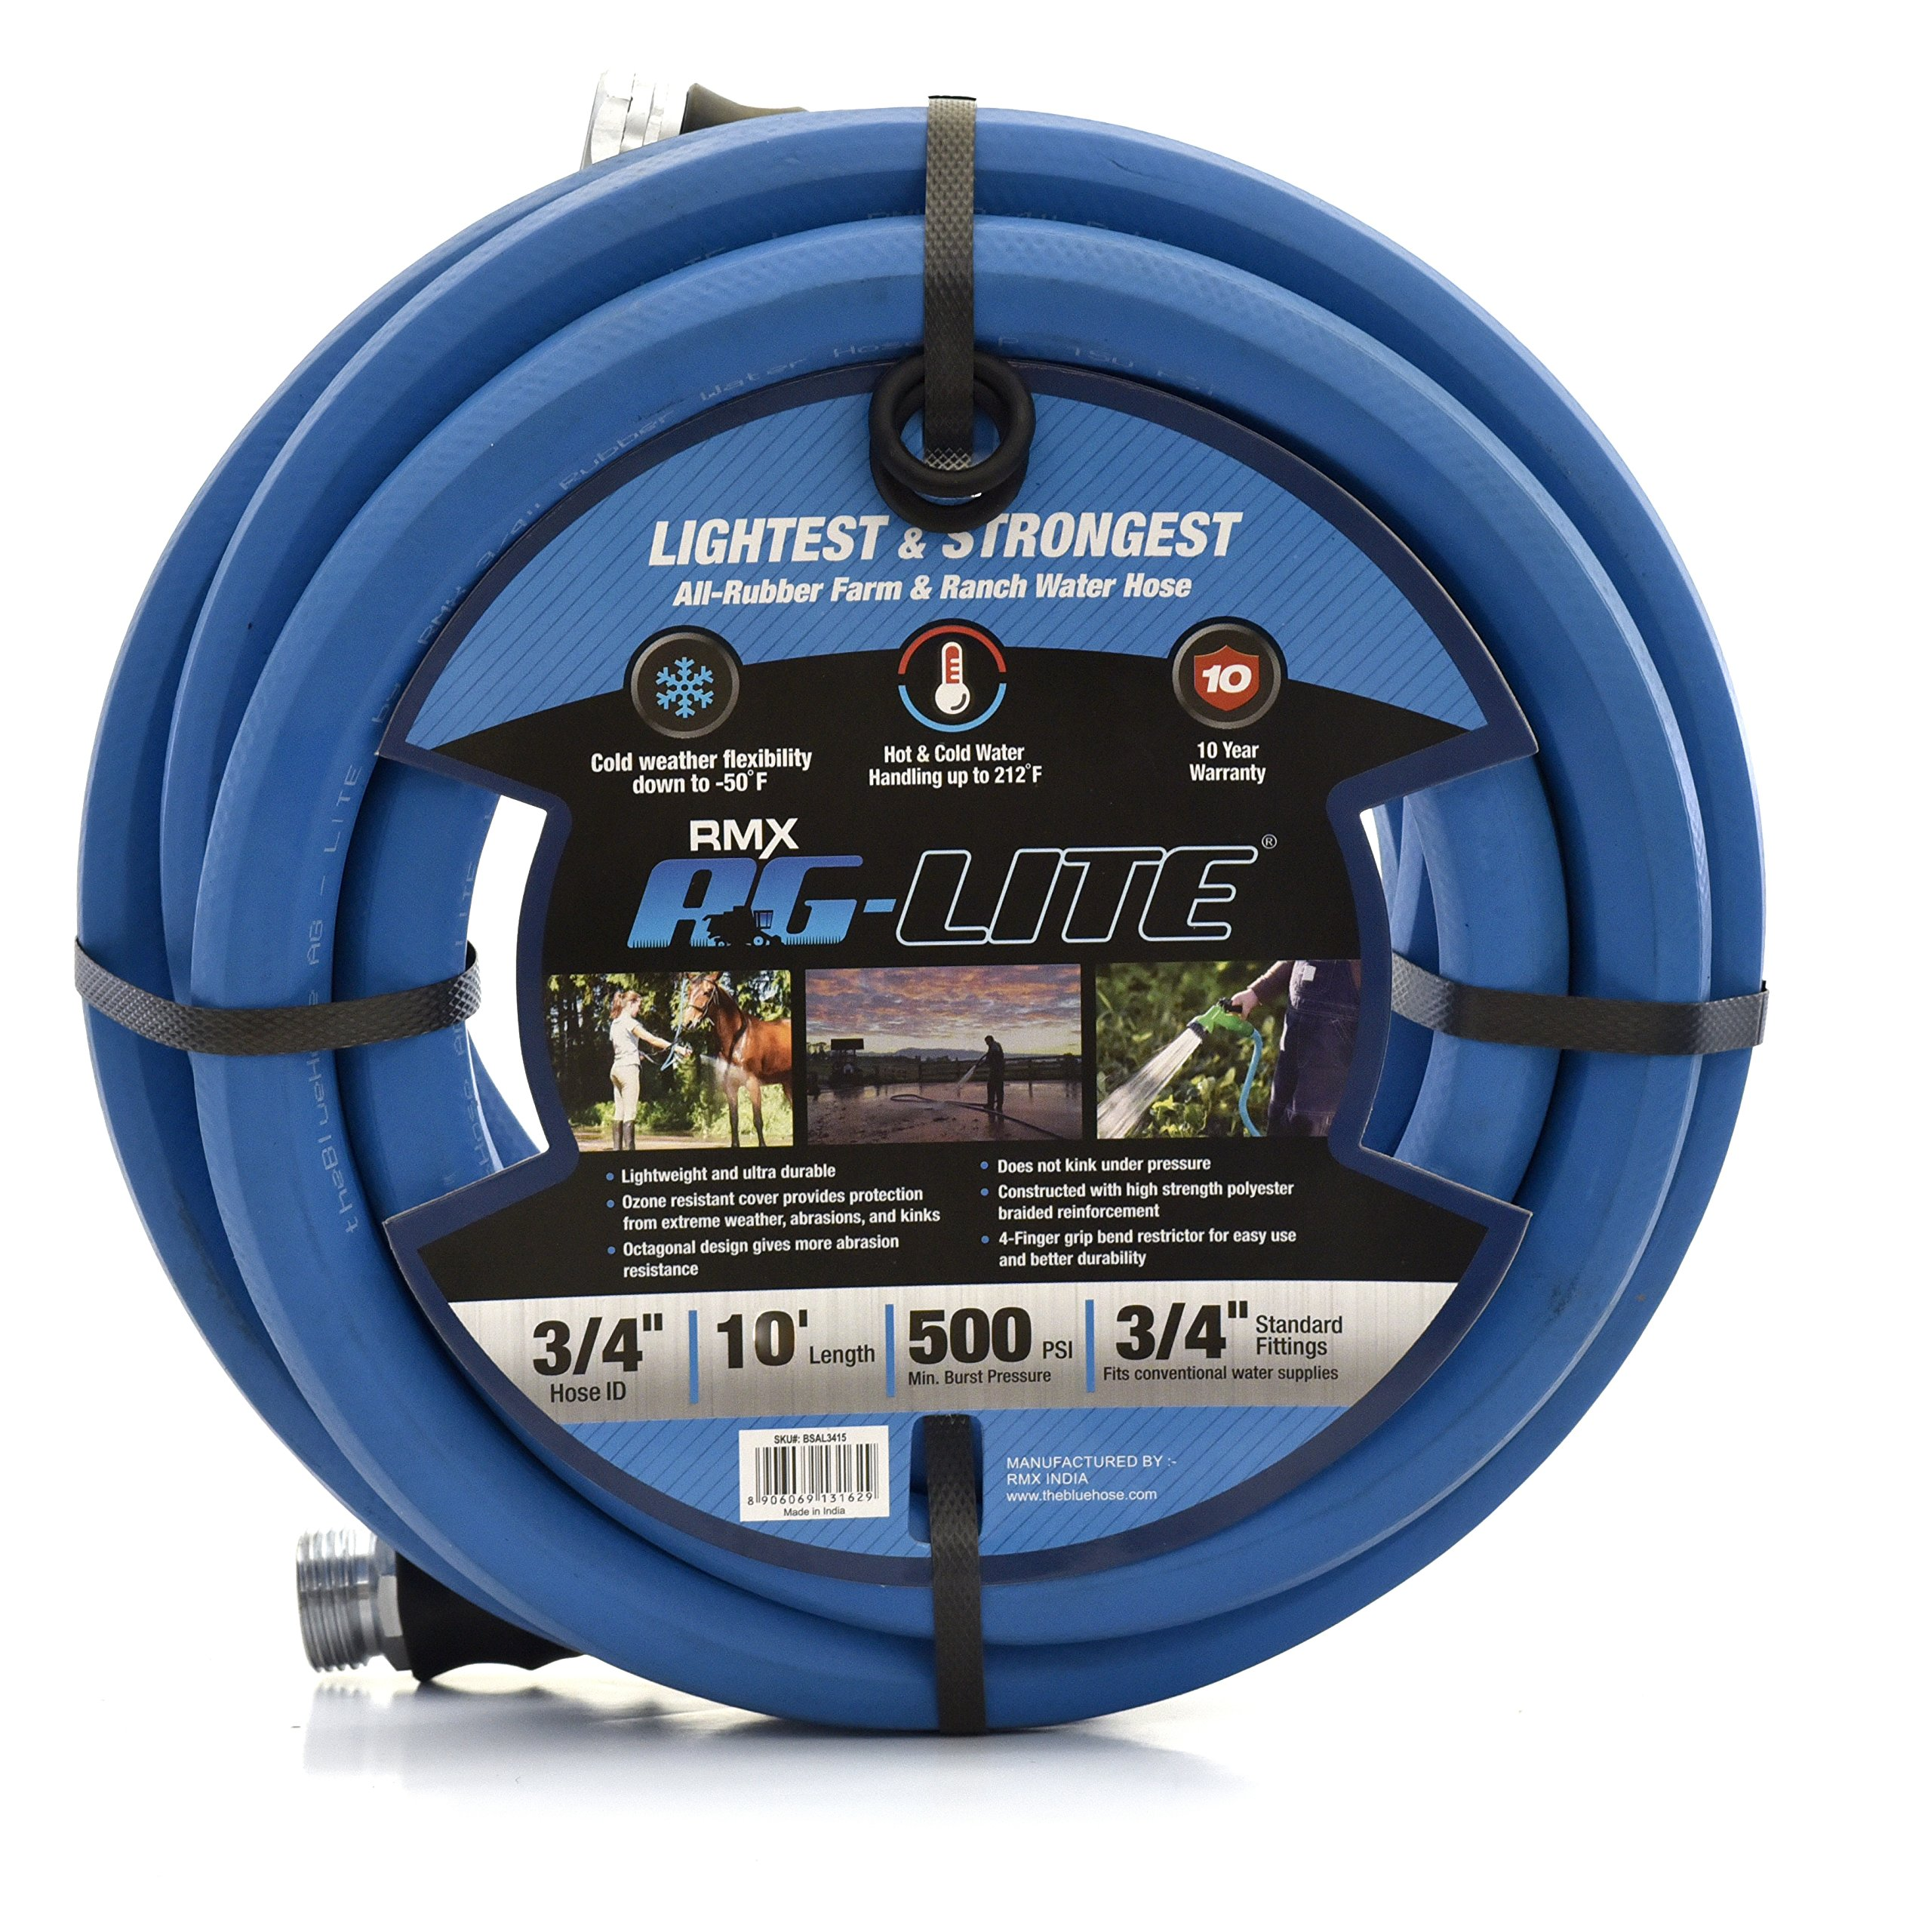 AG-Lite Rubber Hot & Cold Water Rubber Garden Hose: Ultra-Light & Super Strong - 10 Year Warranty (3/4 x 10') by AG-Lite